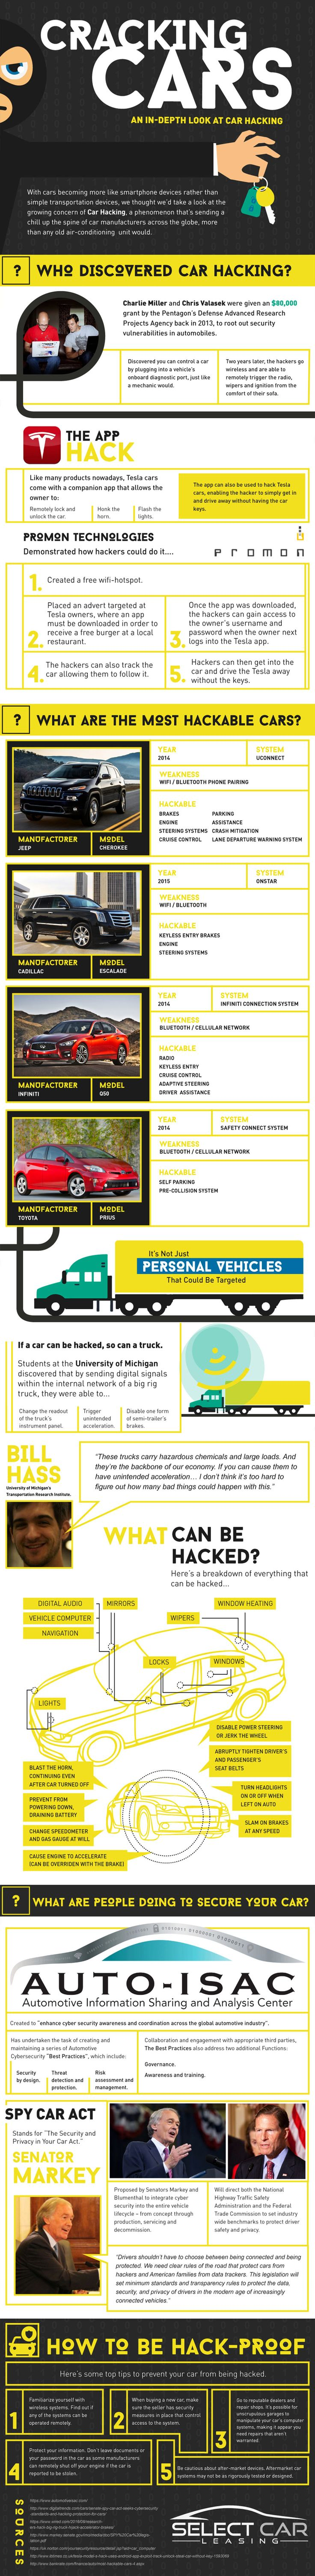 23 best Car Infographics images on Pinterest | Infographic ...